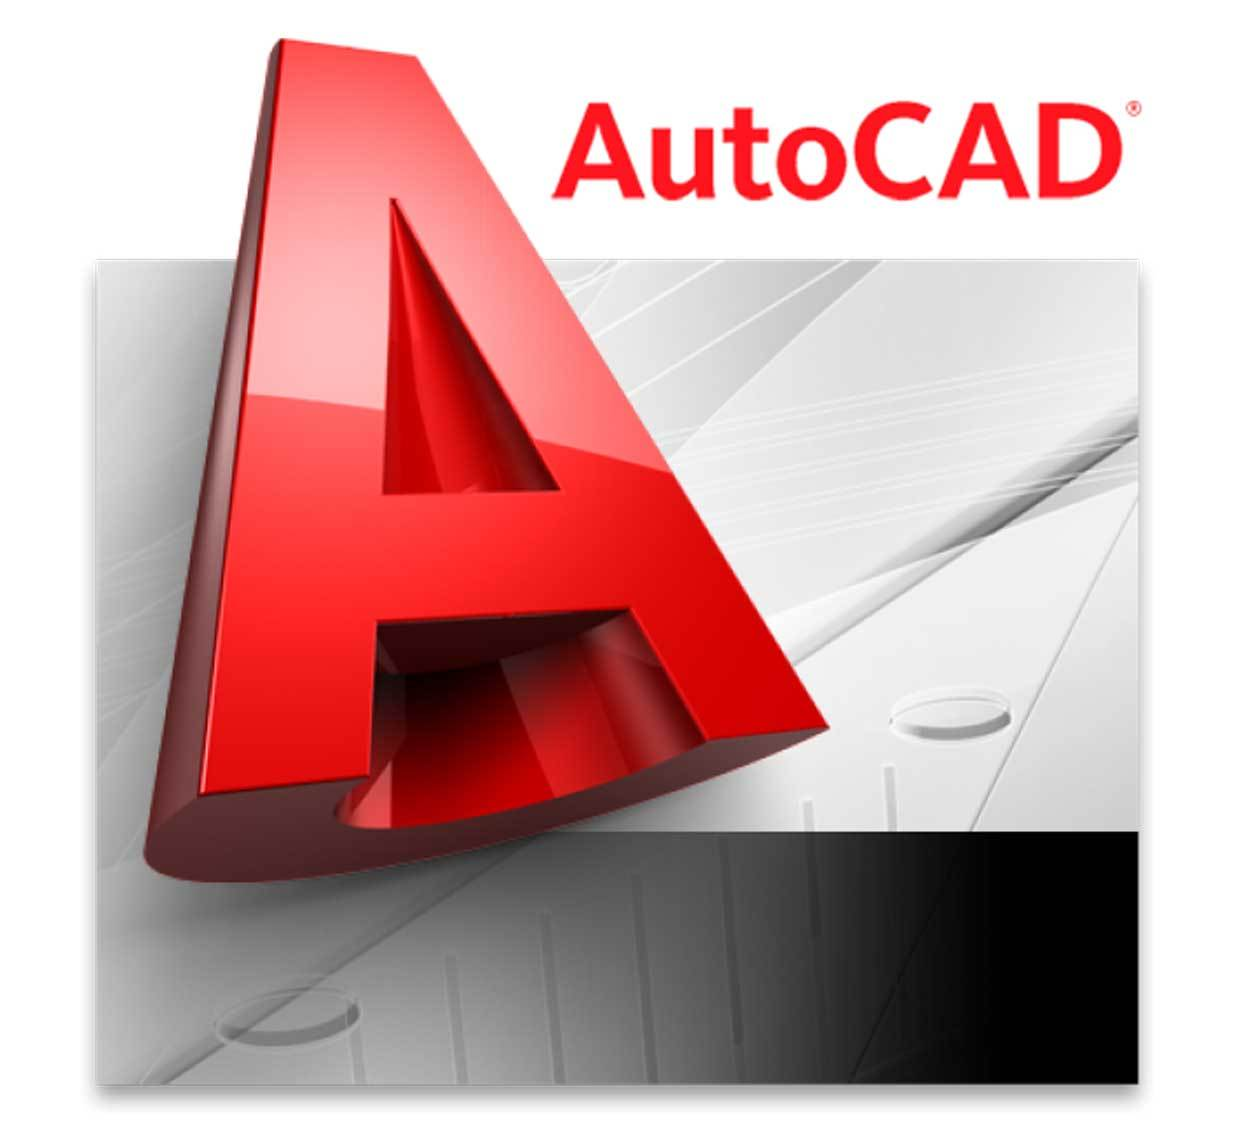 AutoCAD – DWG Viewer & Editor APKv4 5 0 (Latest Version